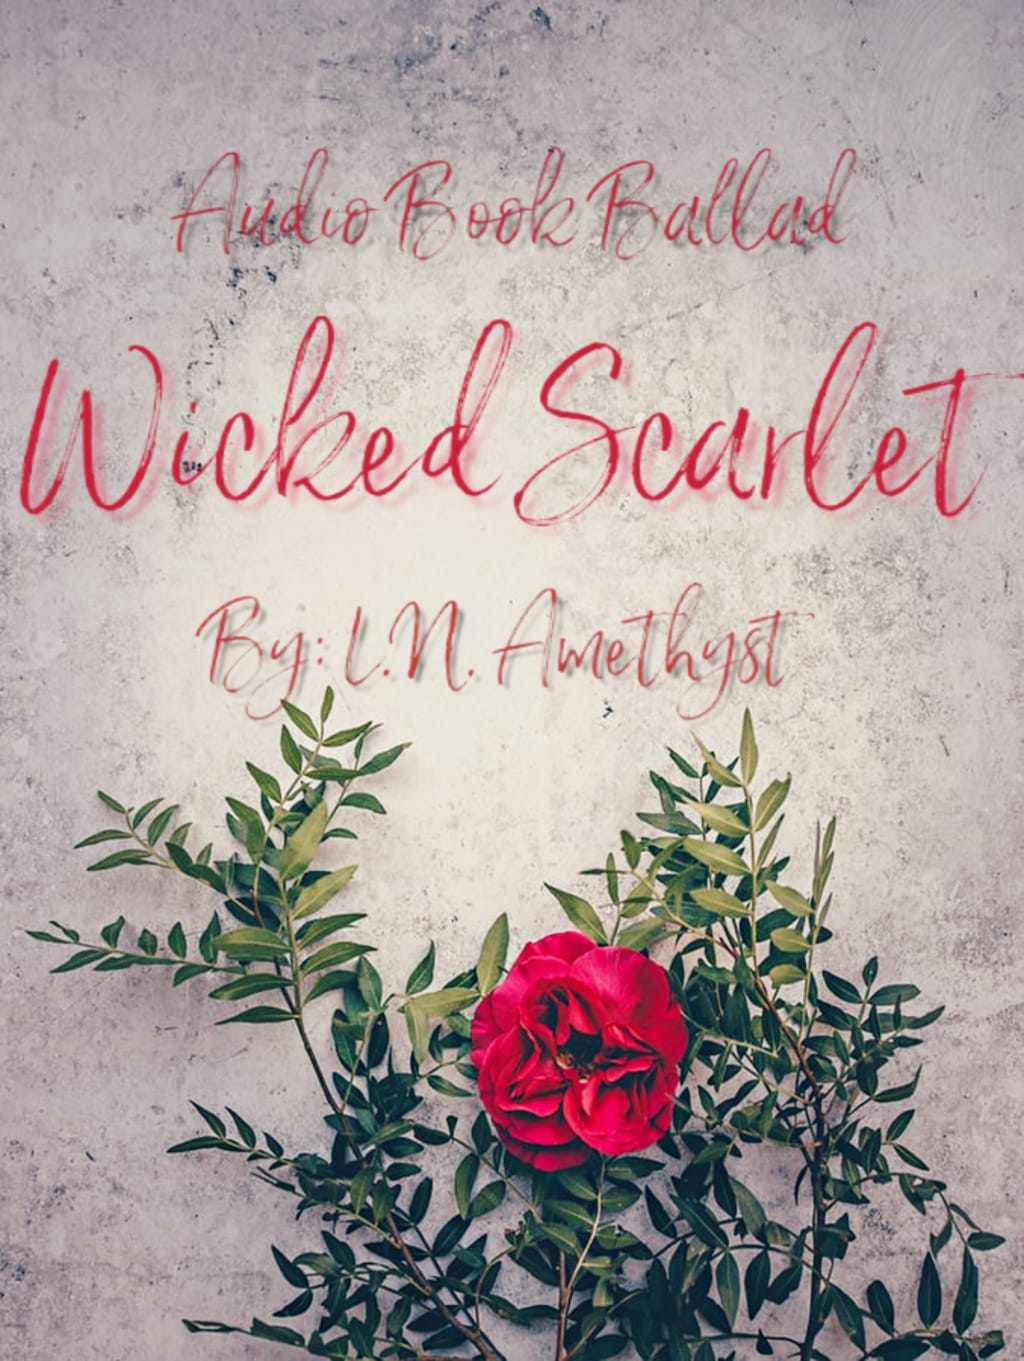 Wicked Scarlet